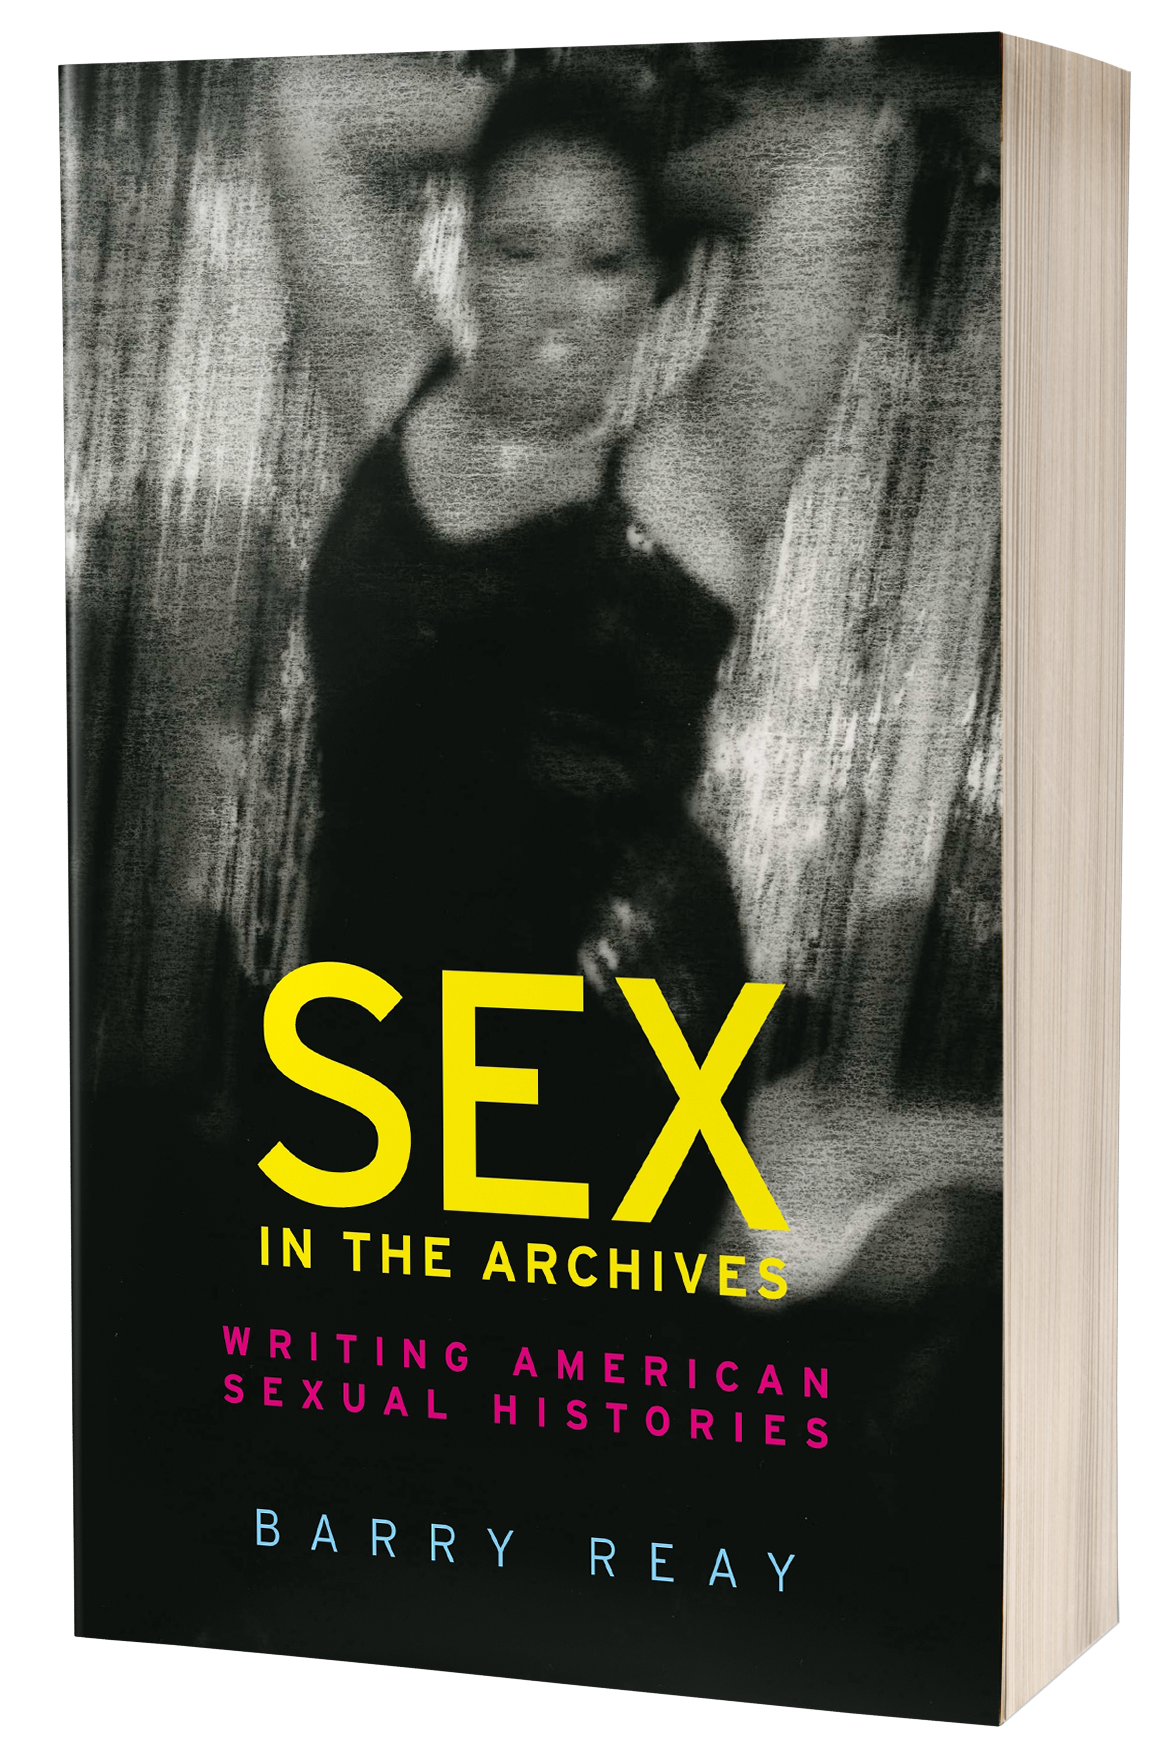 Sex in the archives – Q&A with Barry Reay